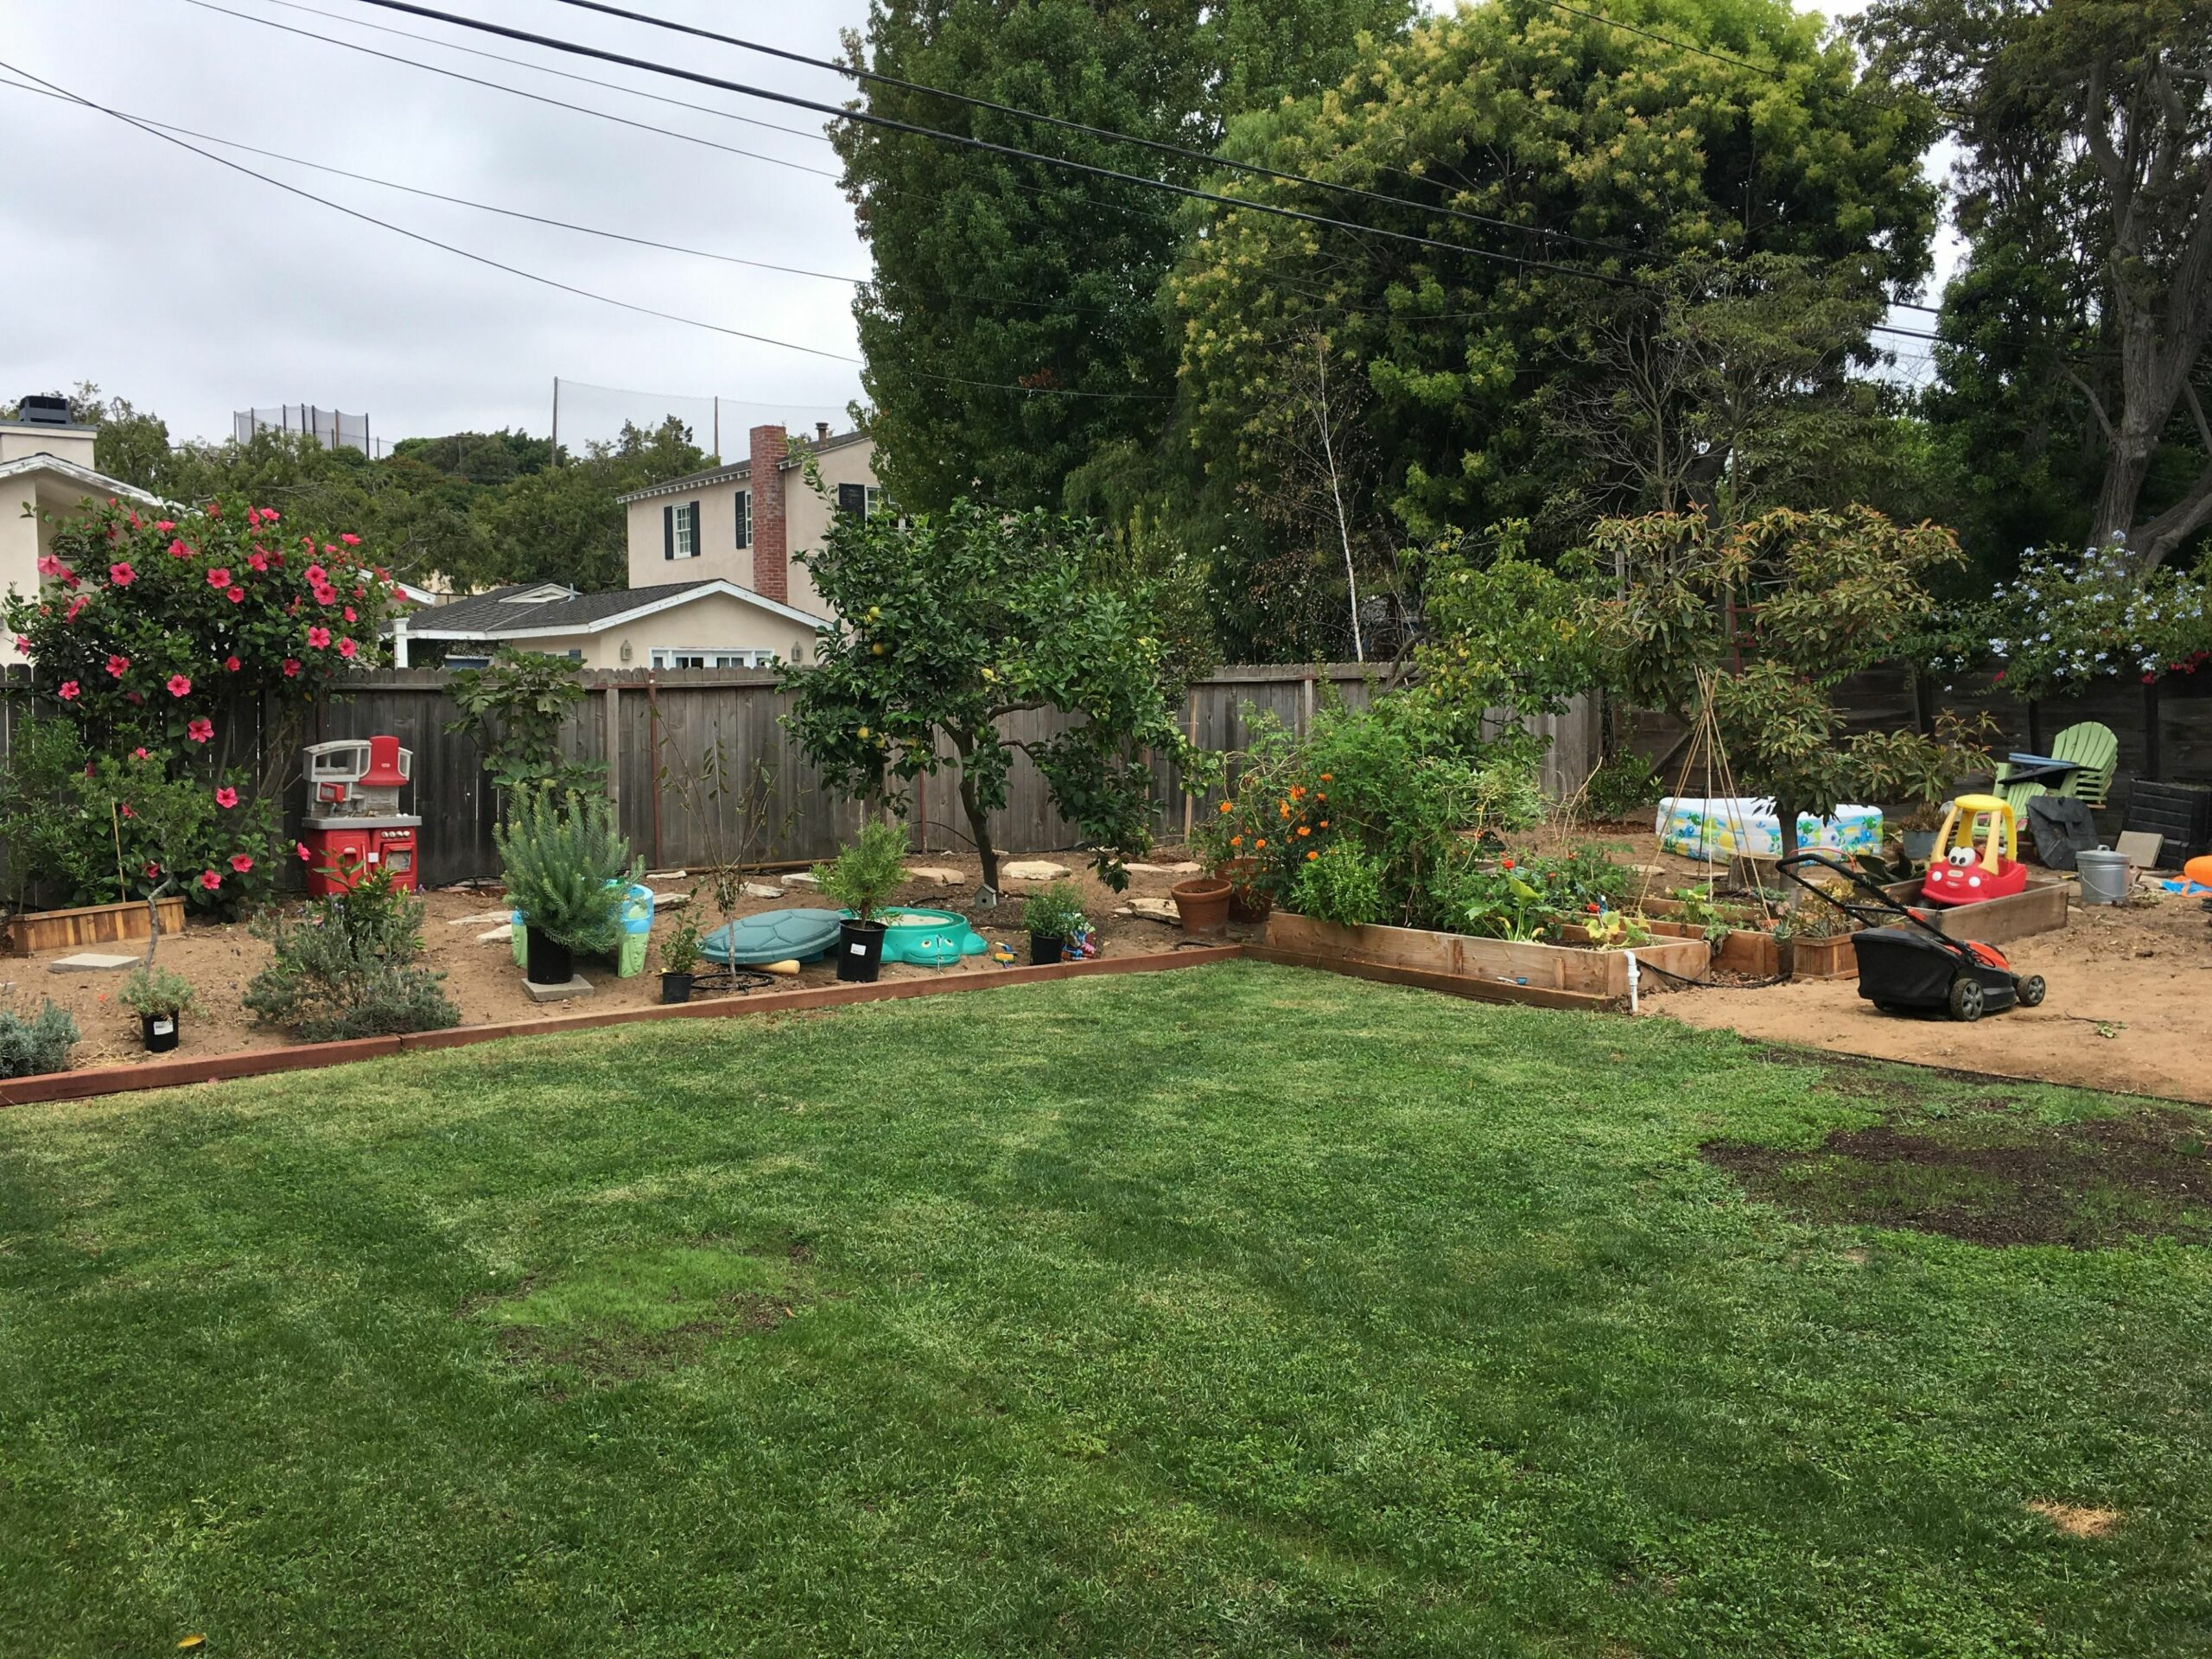 Pea gravel or wood bark? Need ideas for ground cover kids can ..